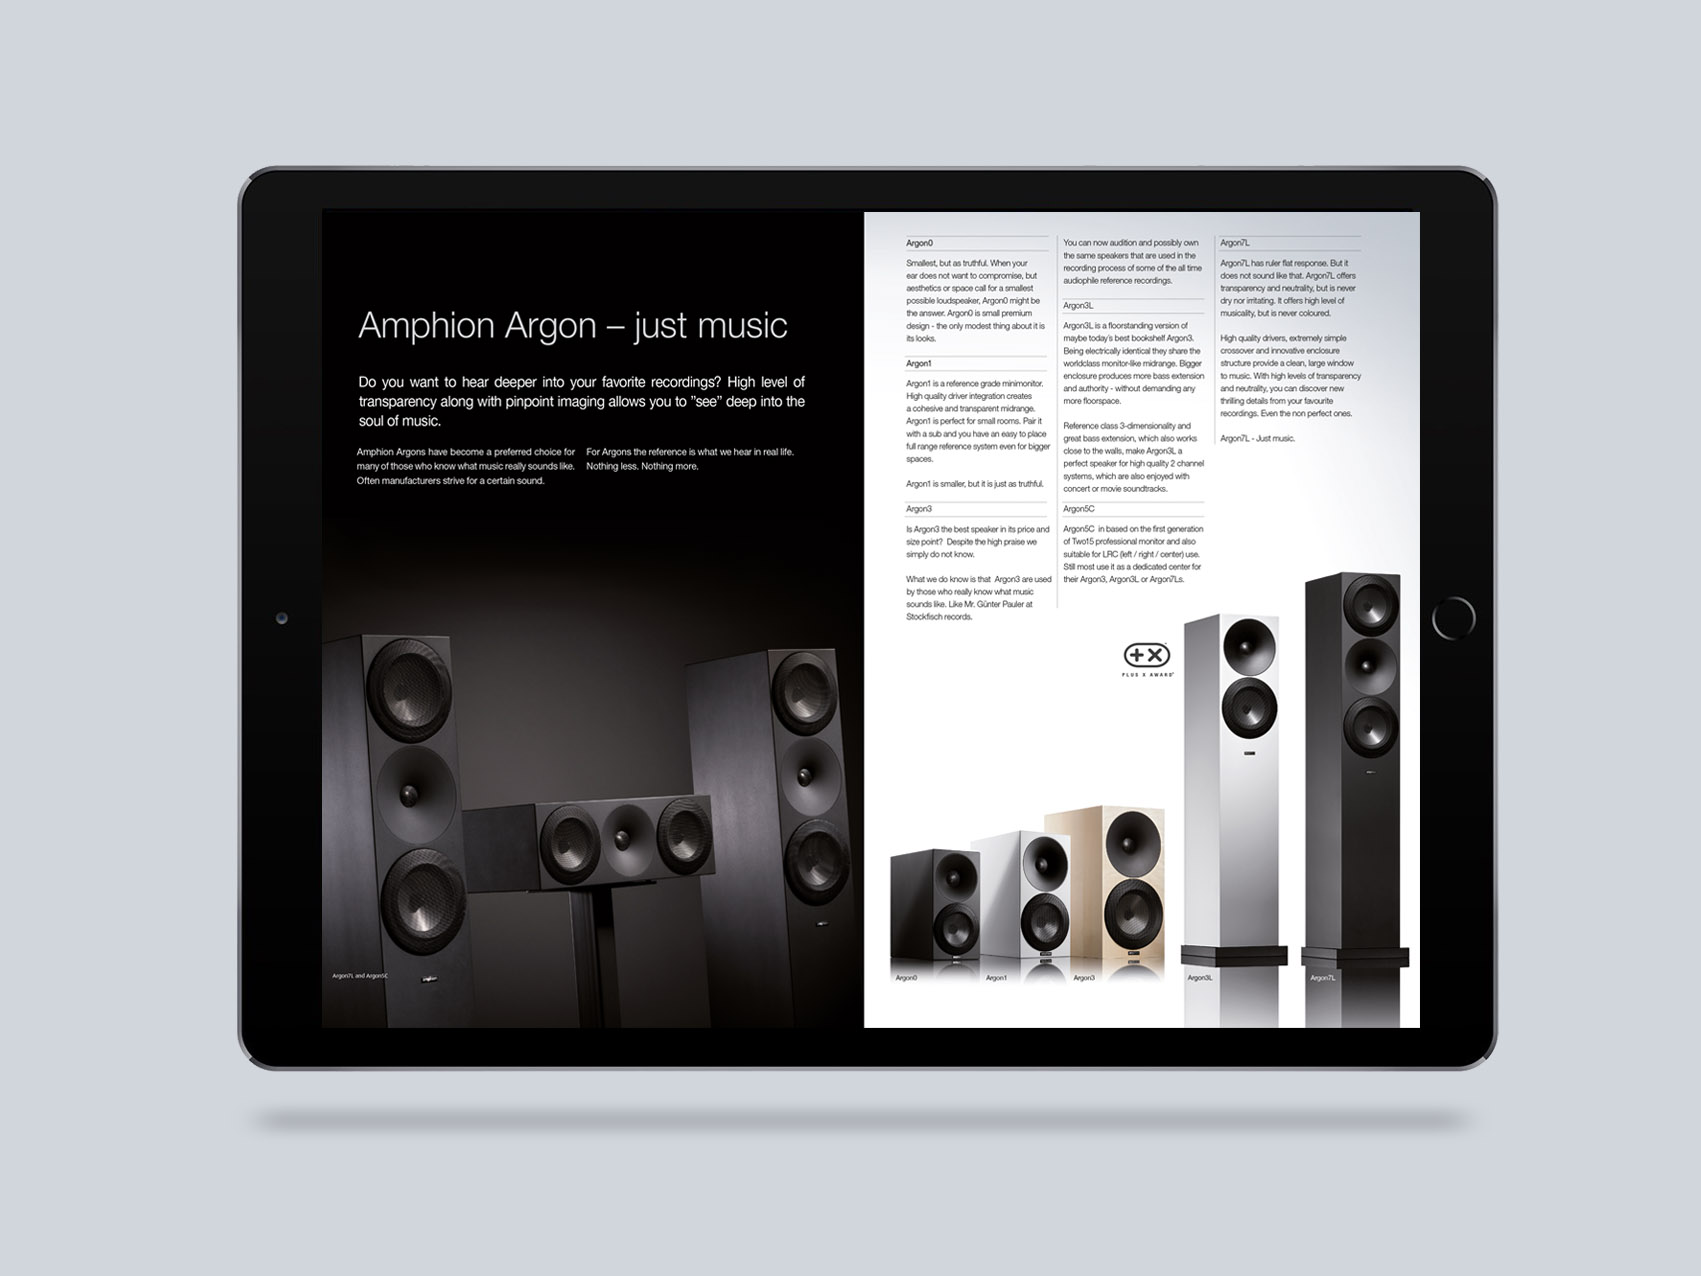 Amphion: visuaalinen ilme